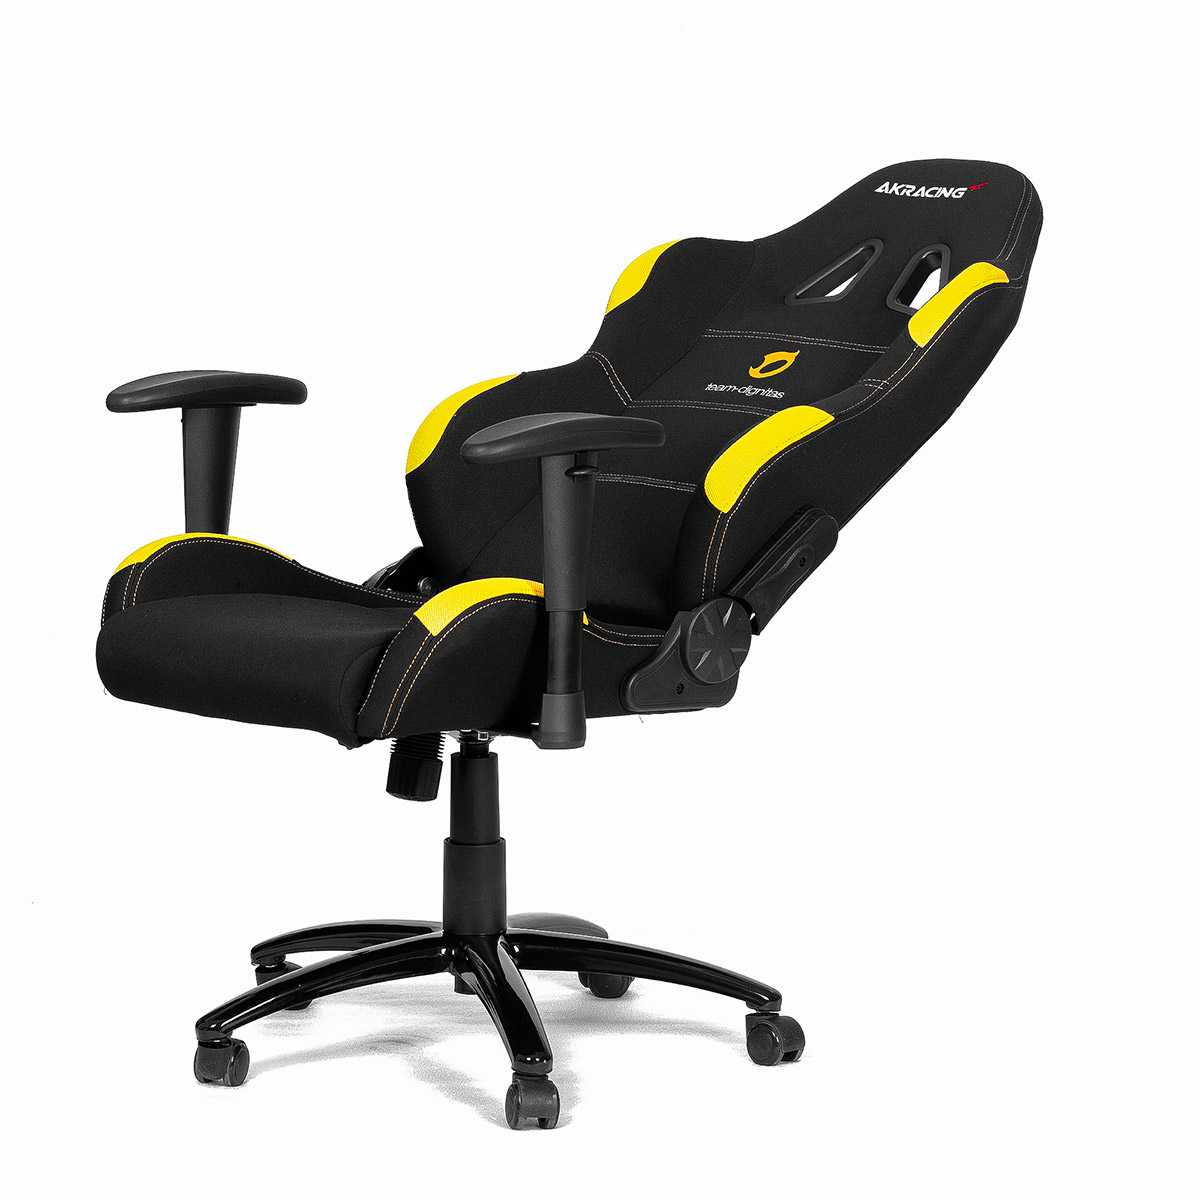 pro gaming chairs uk metal kitchen chair cushions ak racing team dignitas edt yellow large image from a one distribution